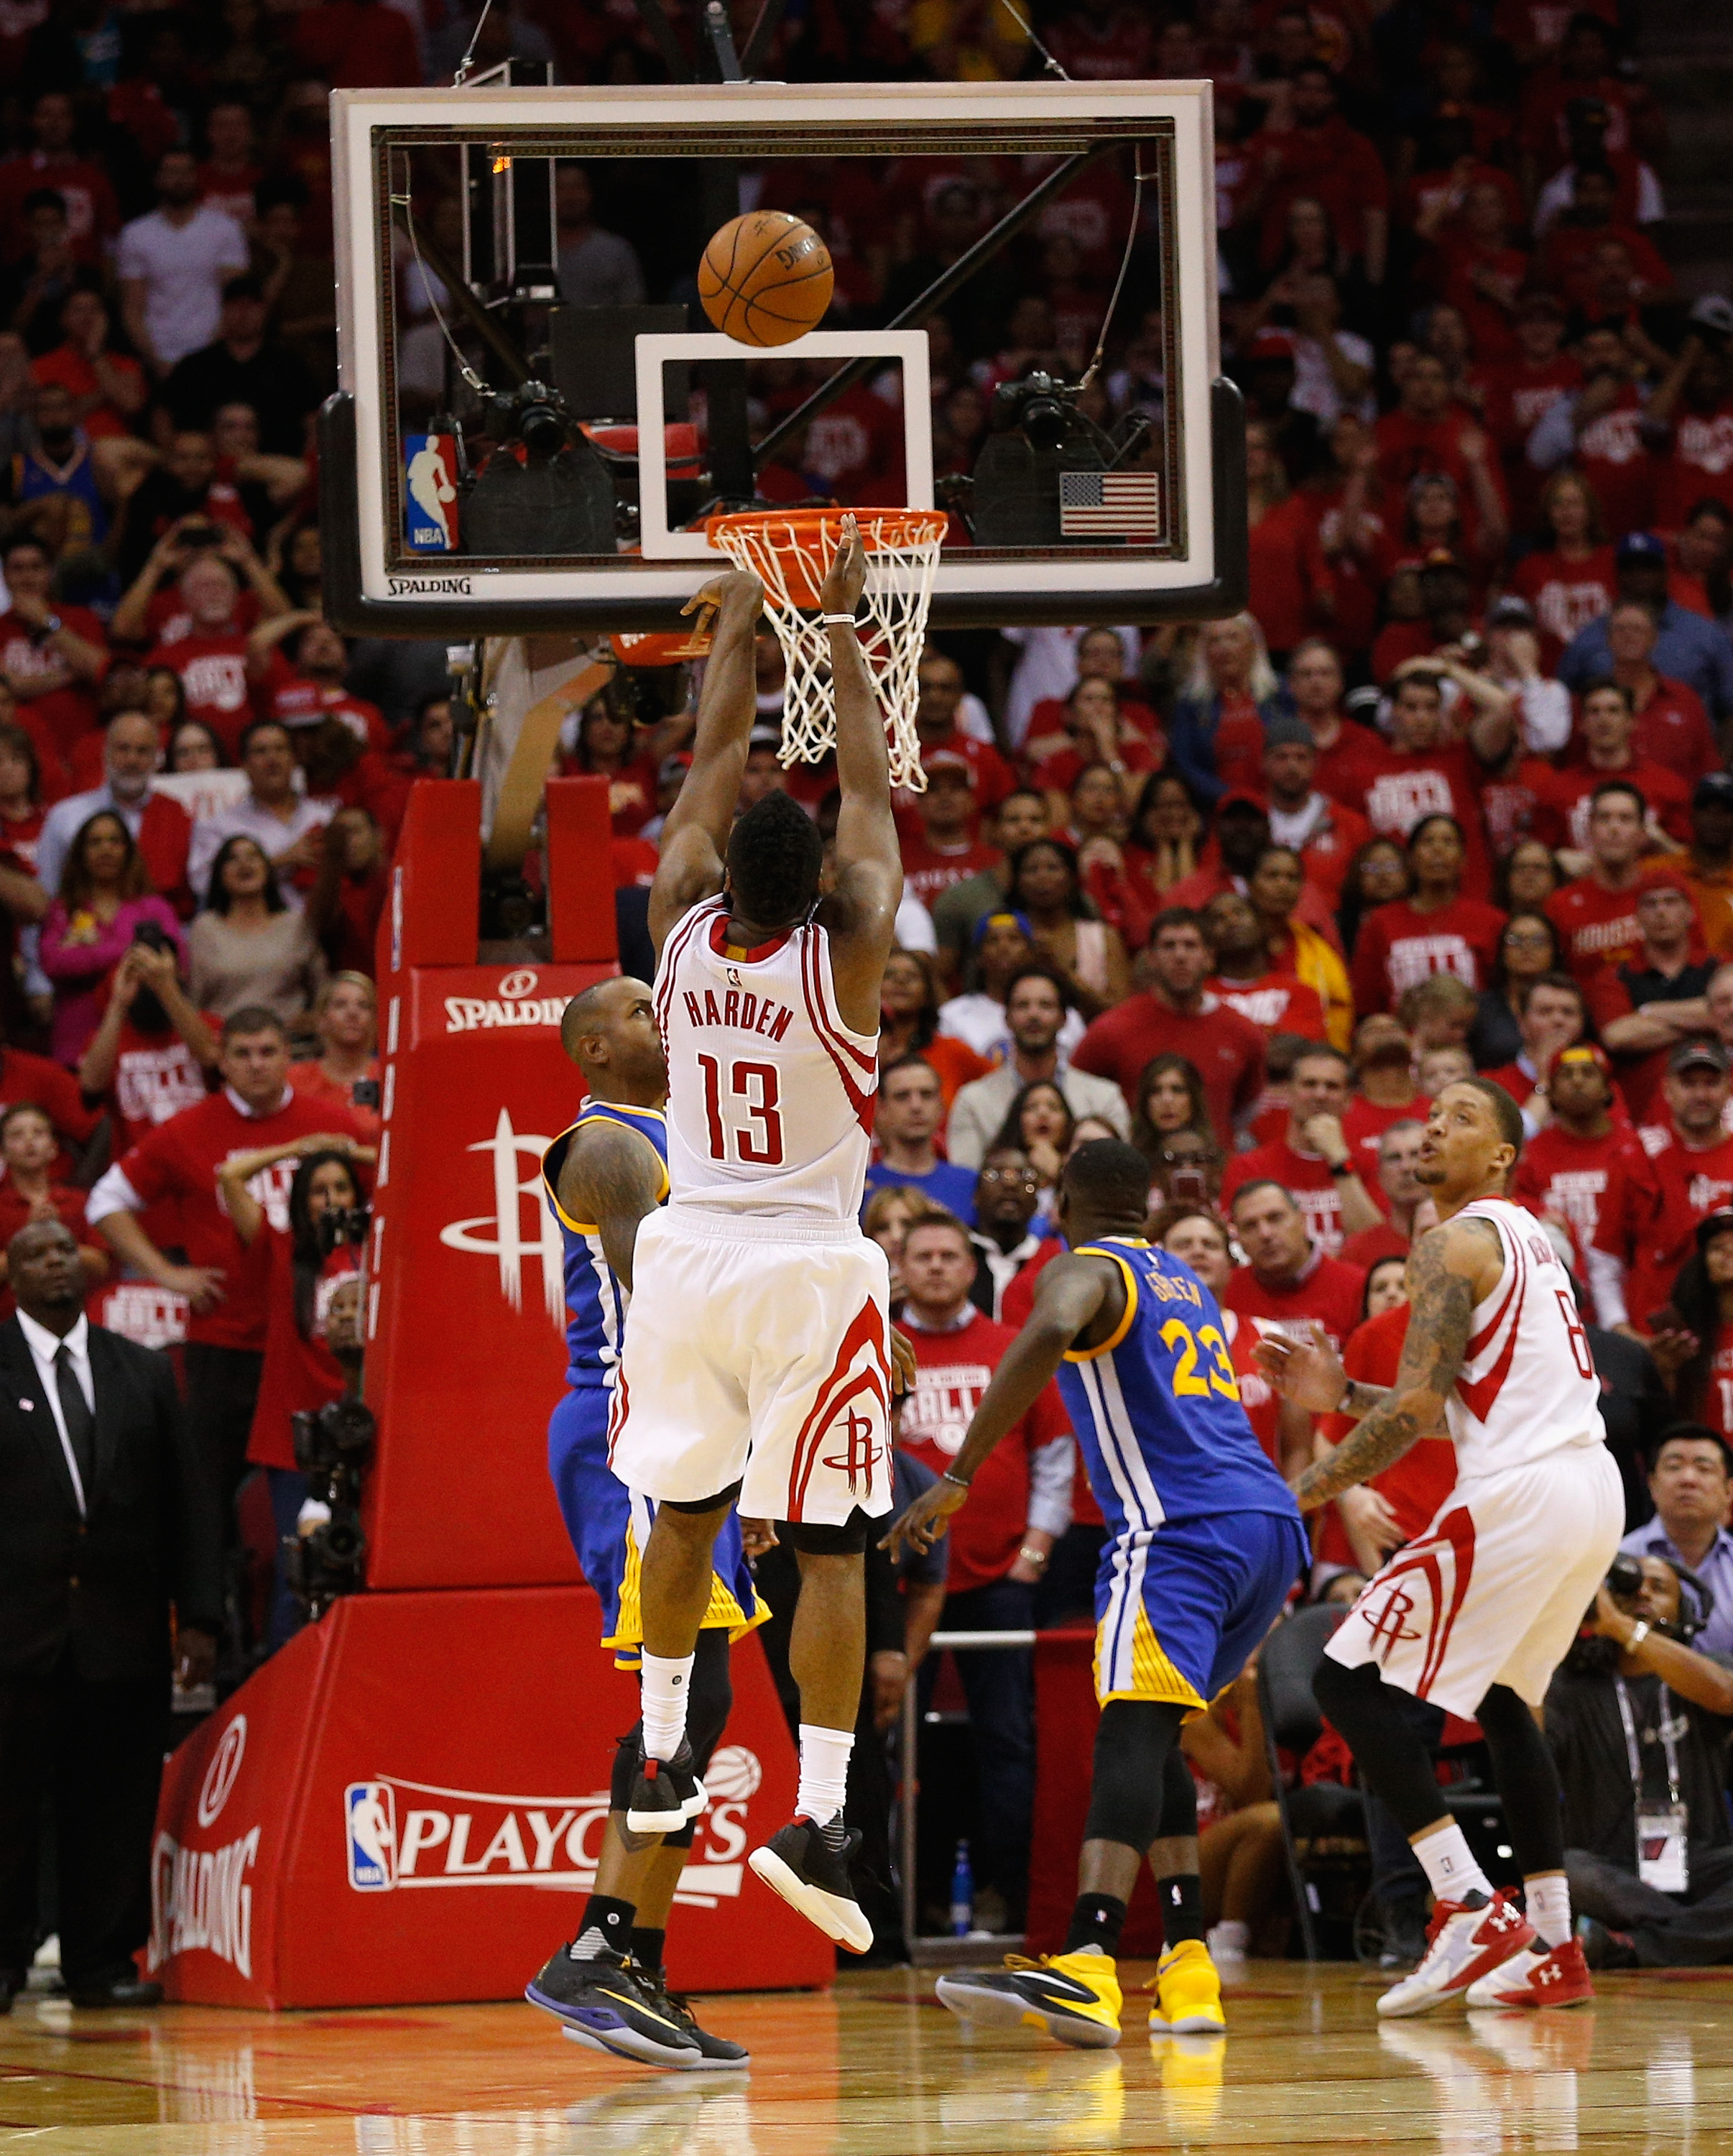 Rockets And The Warriors Game: The Cheat Sheet: Jake Arrieta; Rockets; Conor McGregor; Prince